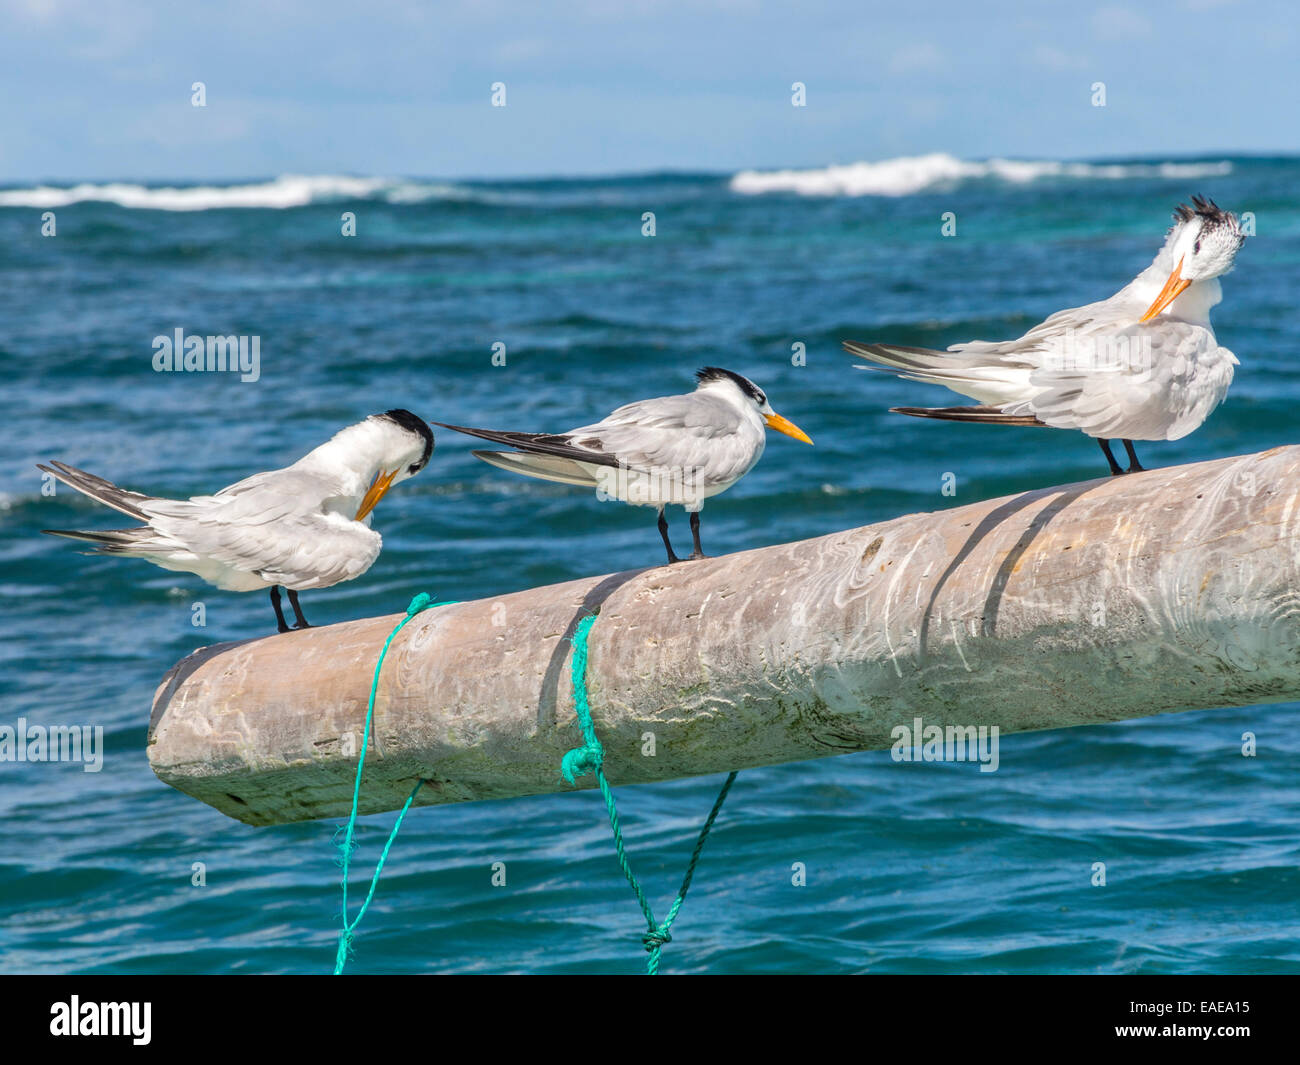 Three Royal Terns [Thalasseus maximus] preening on a pole jutting out with the Caribbean sea in the background. - Stock Image